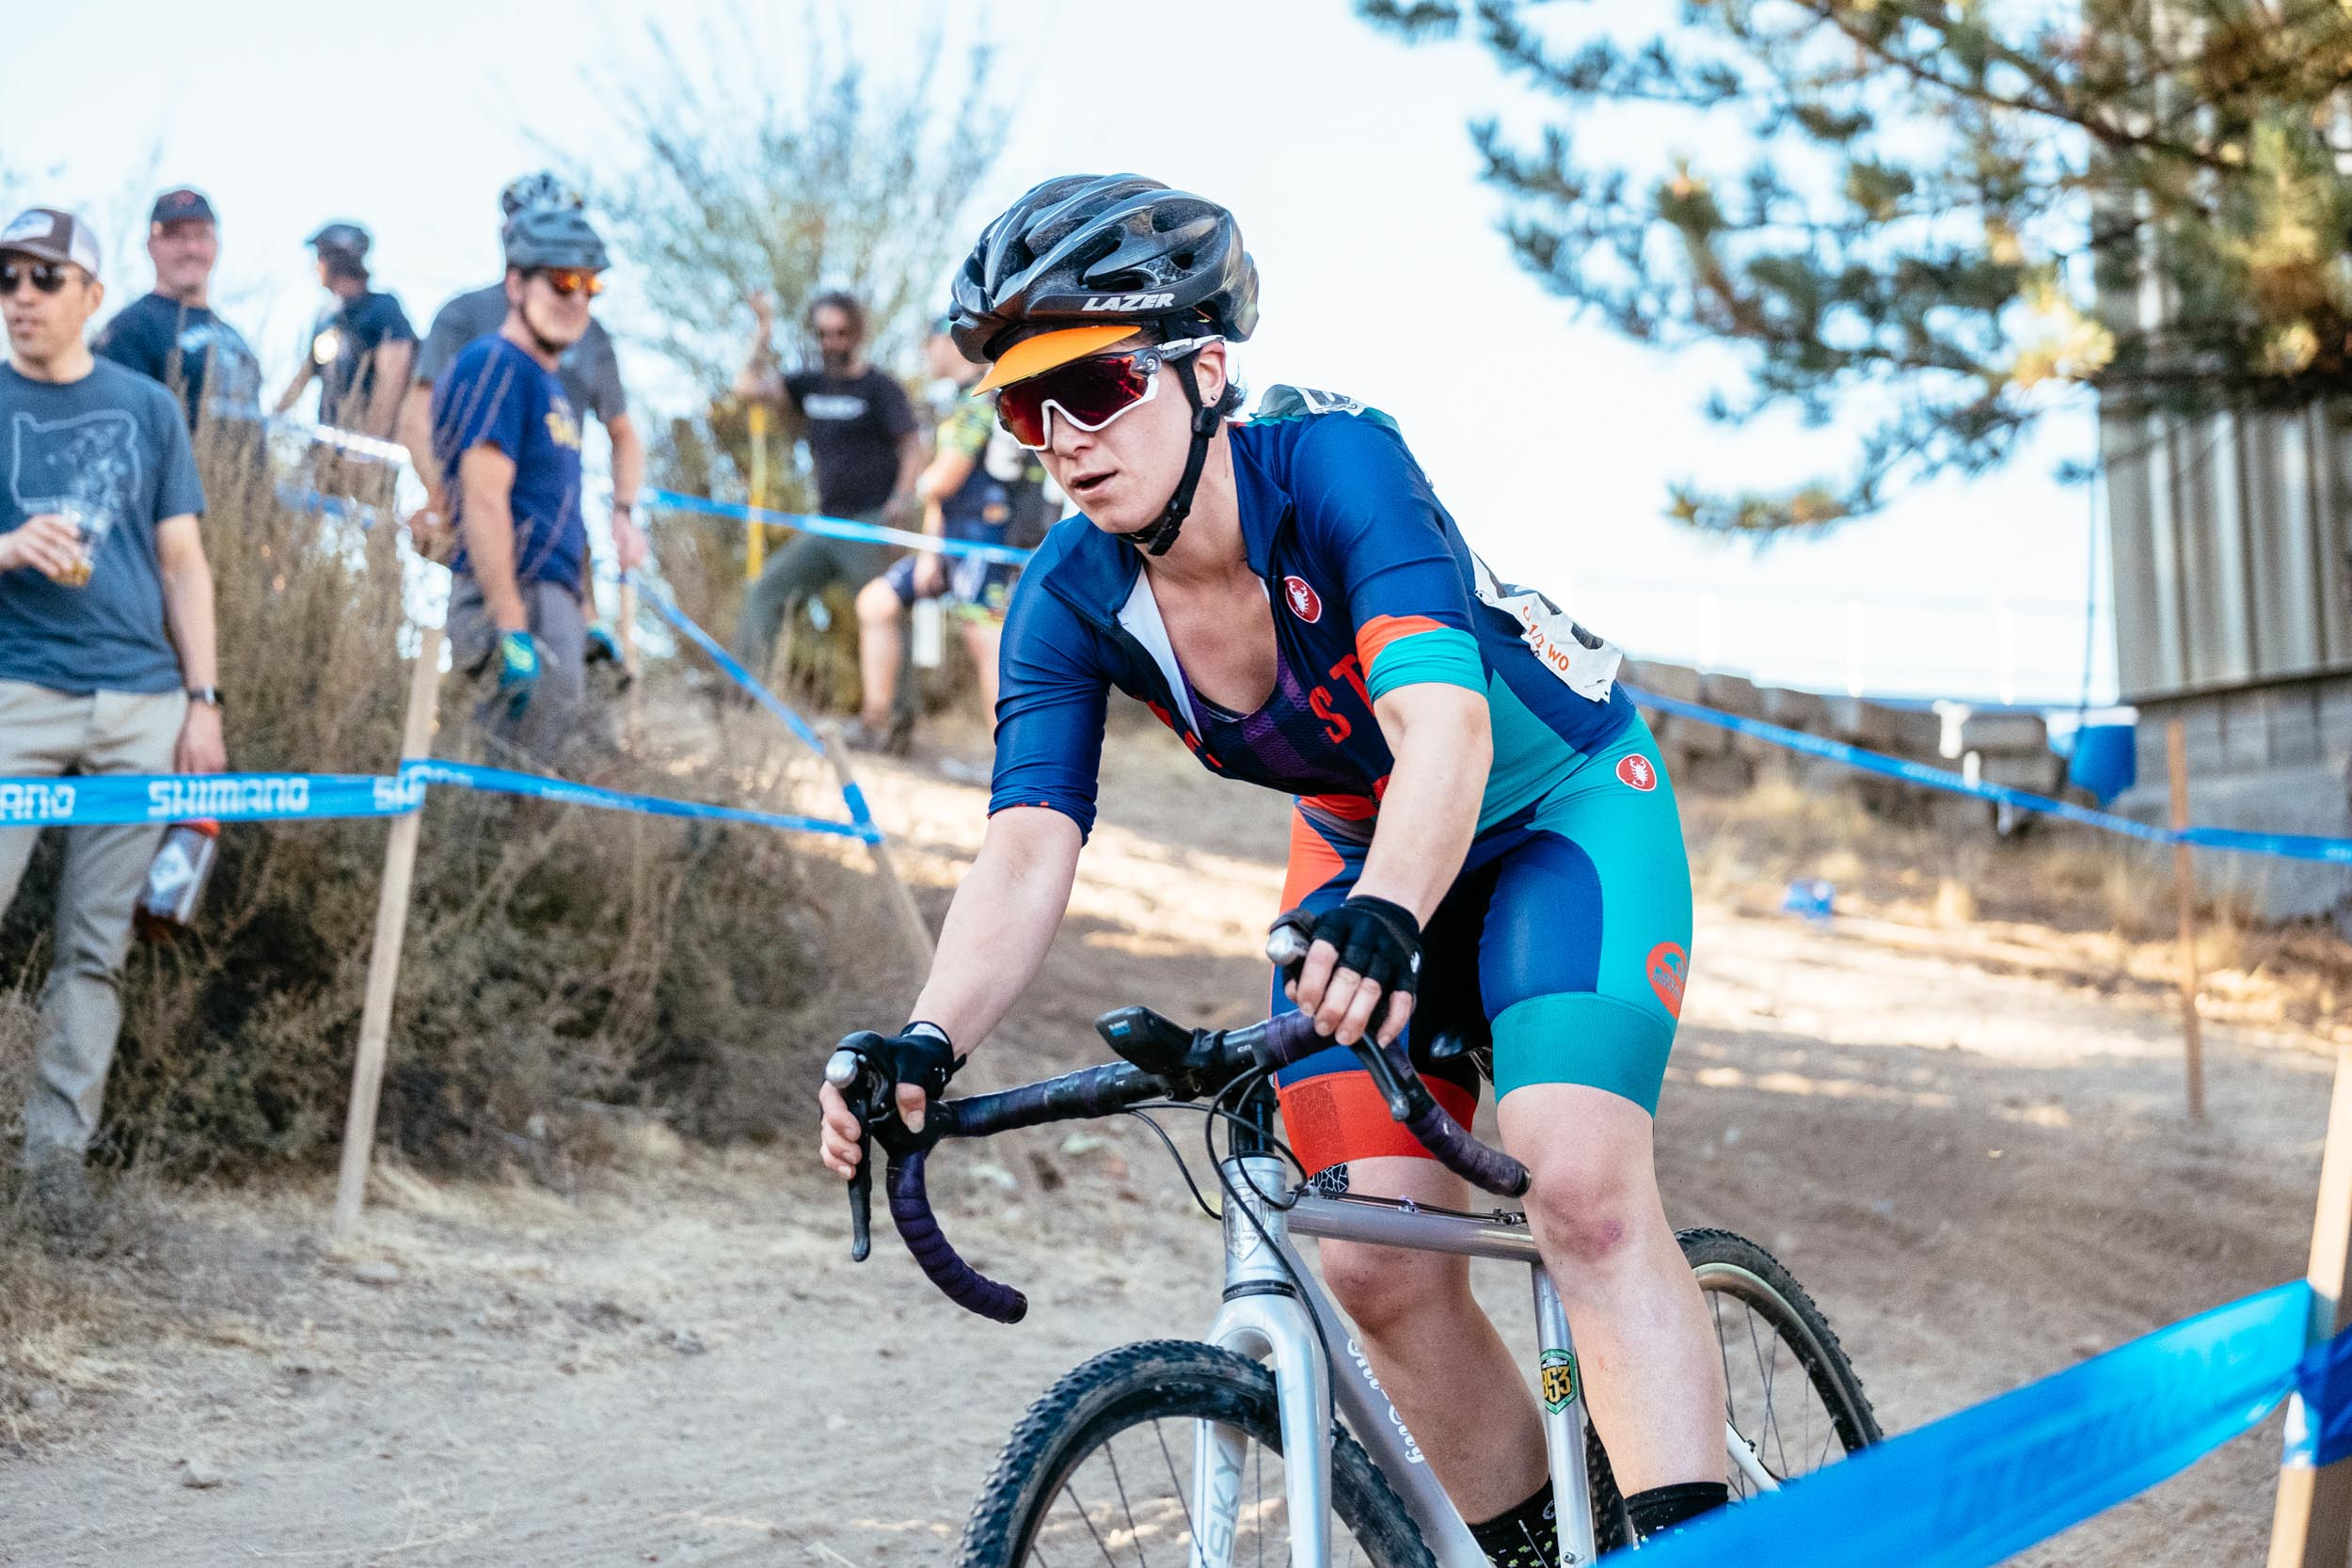 2017-Cross-Crusade-Bend-Day1-18.jpg